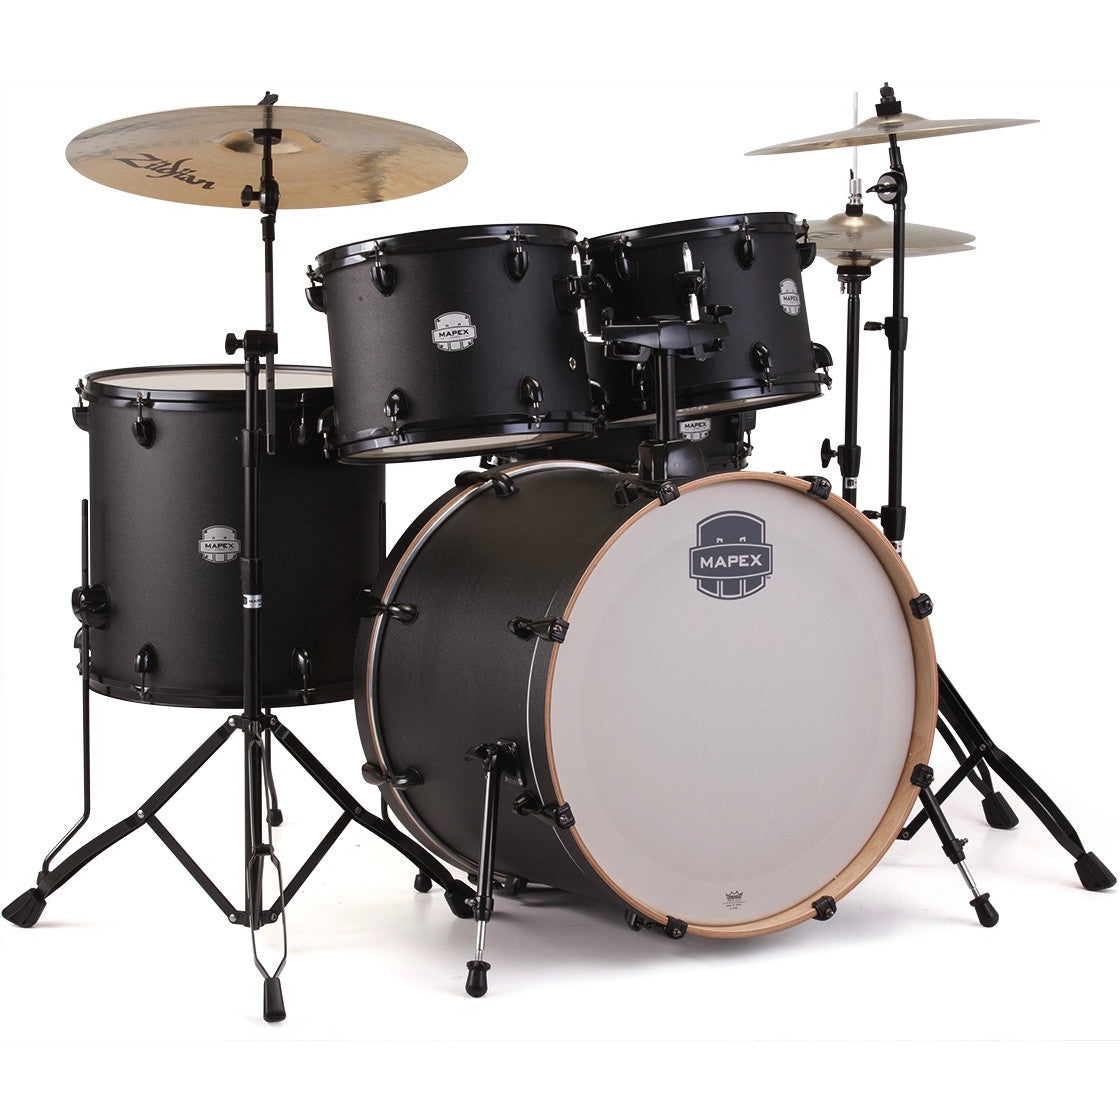 Mapex Storm 5-Piece Standard Drum Set - Deep Black | Music Experience | Shop Online | South Africa